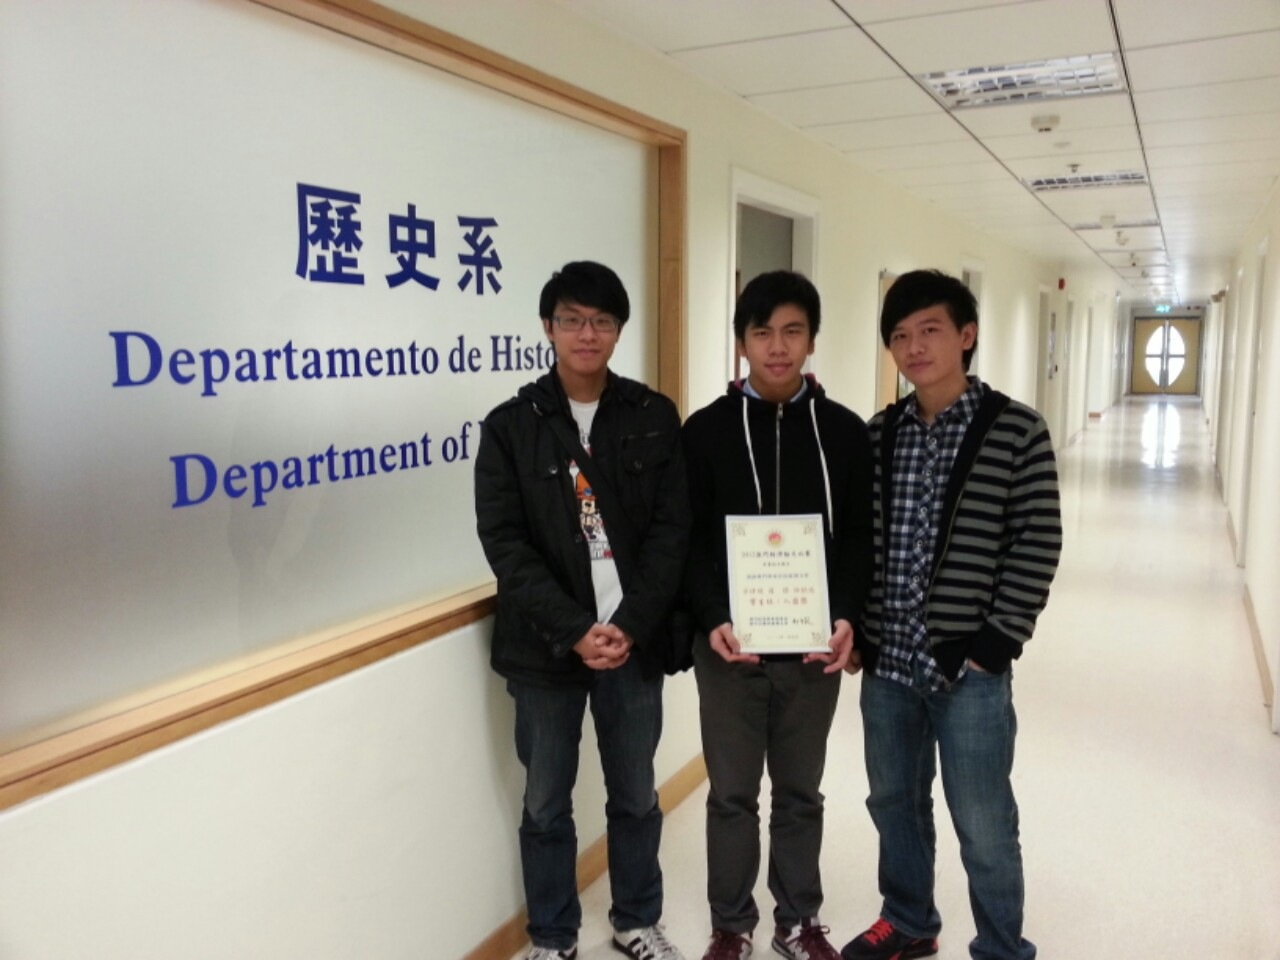 Prize-winning students from the Department of History